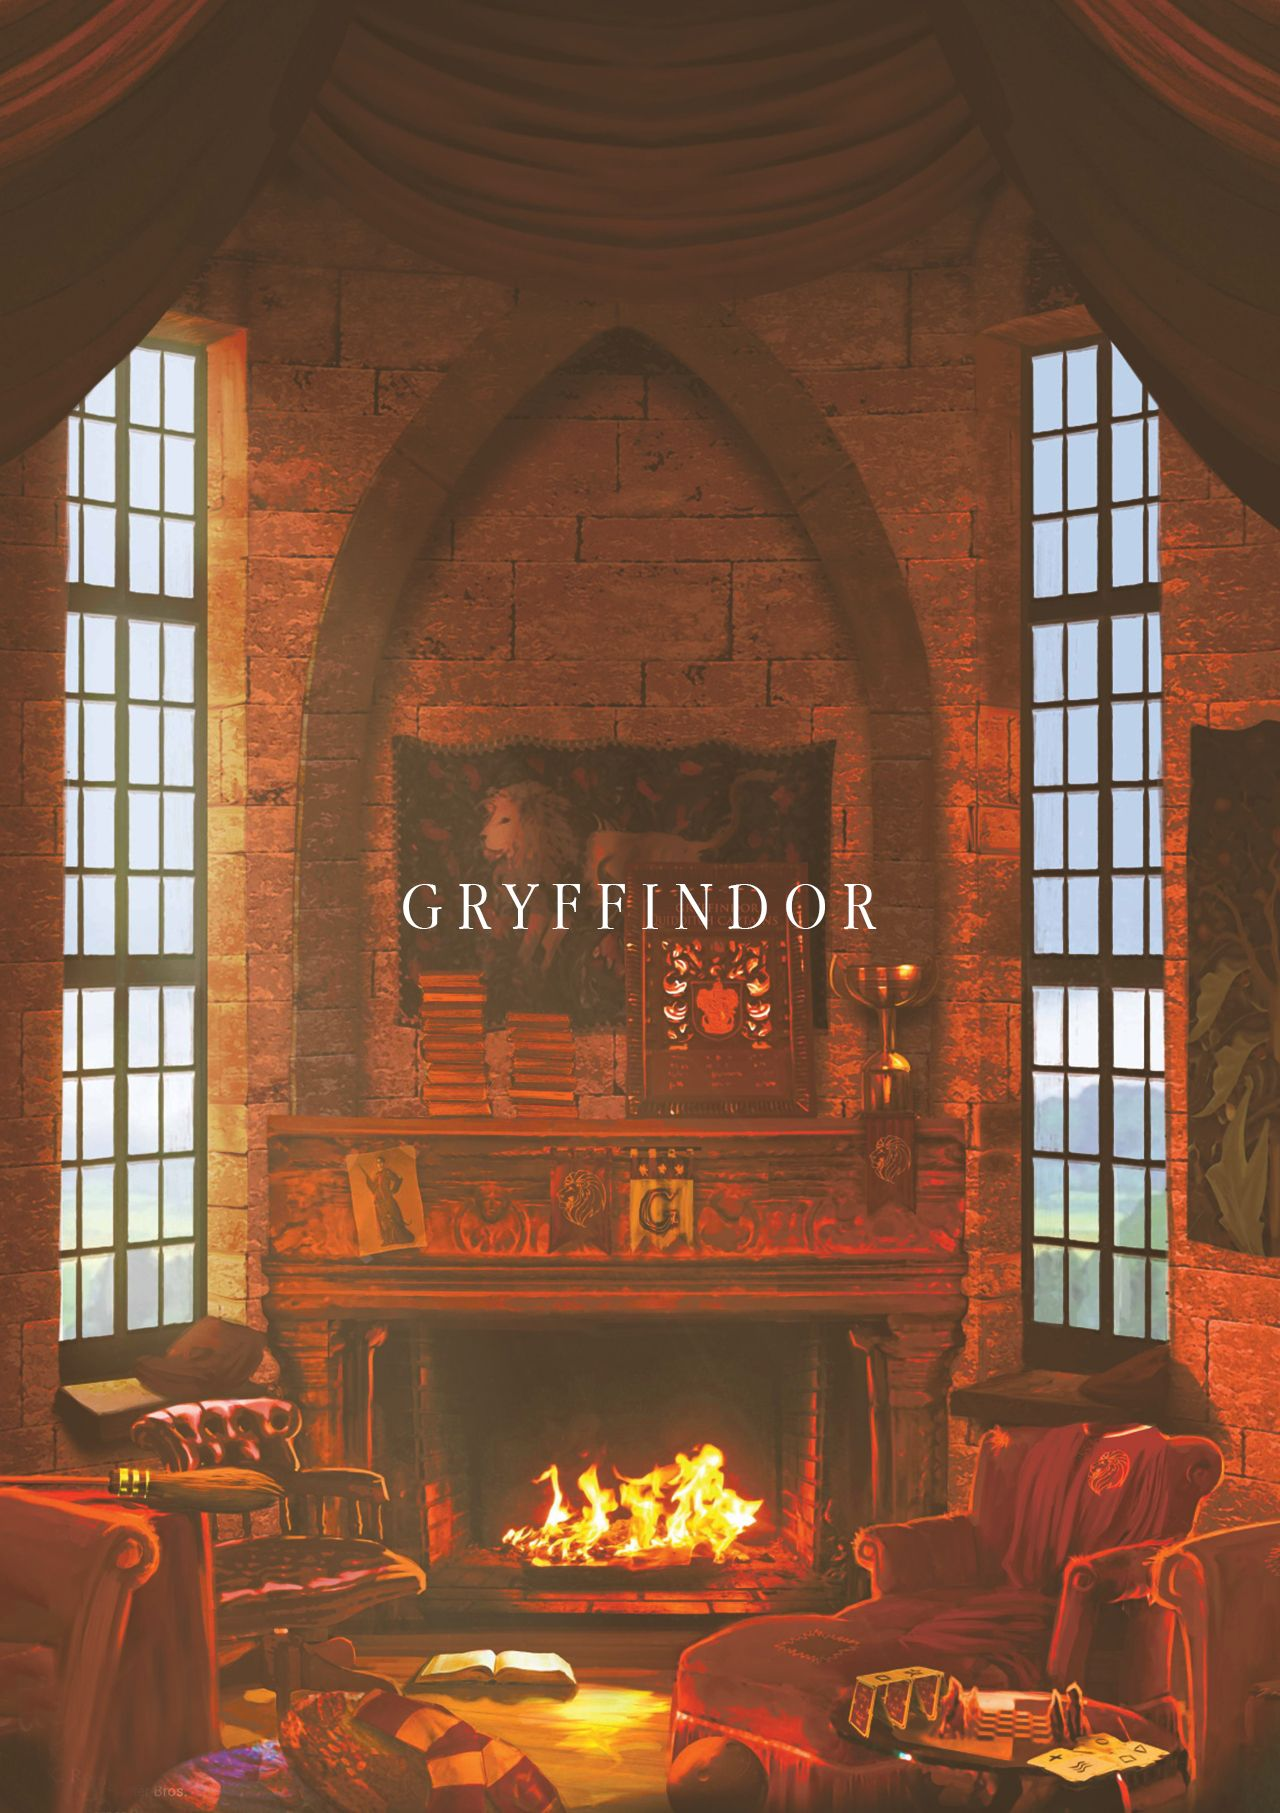 gryffindor tumblr gryffindor harry potter harry potter h user hogwarts. Black Bedroom Furniture Sets. Home Design Ideas